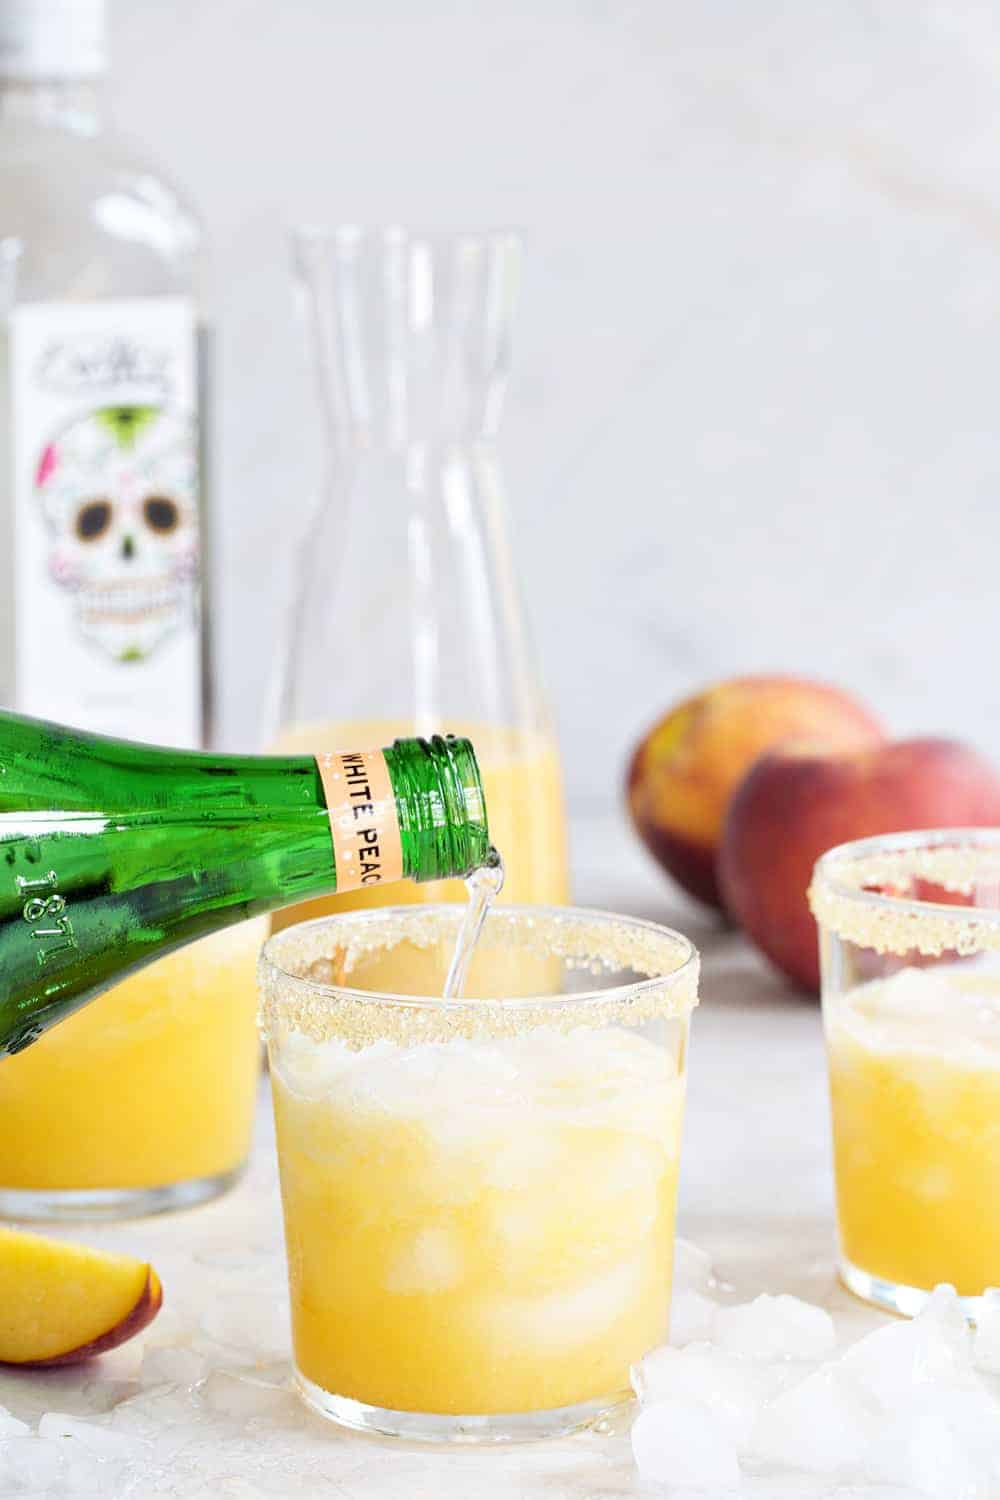 Sparkling Peach Margaritas are the perfect way to celebrate summer. They're light, sweet and bursting with fresh summer flavors!